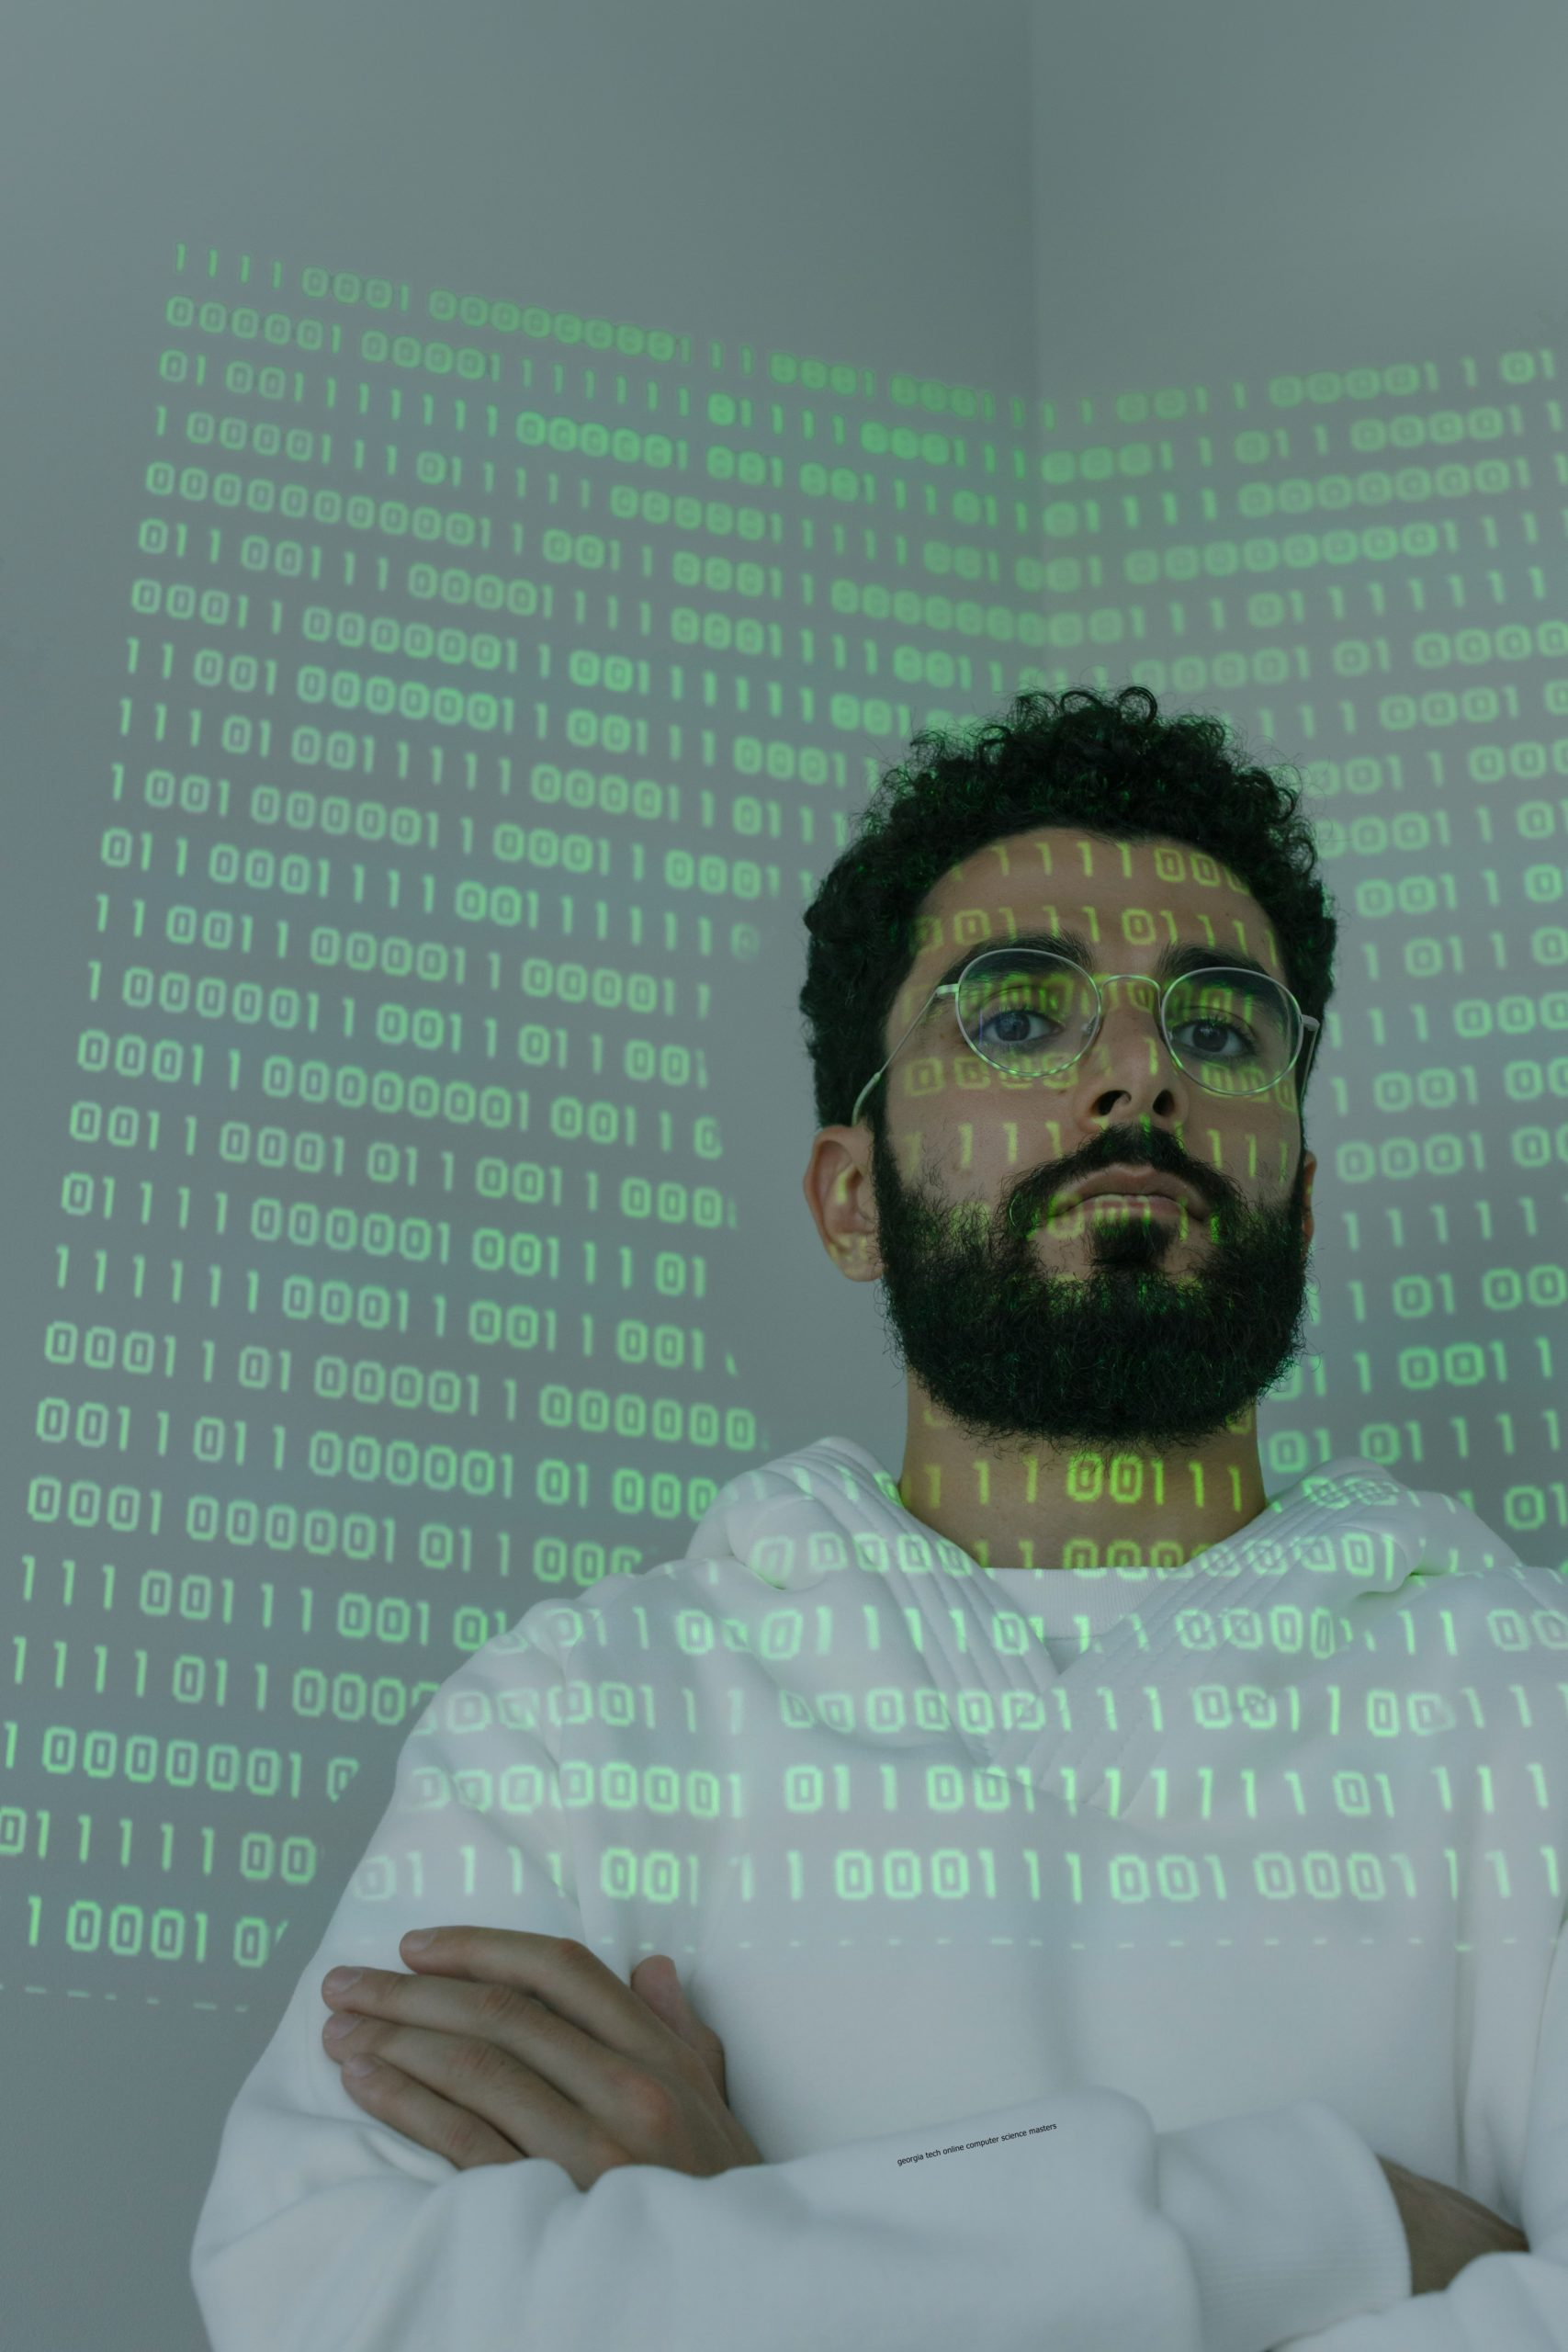 georgia tech online computer science masters image